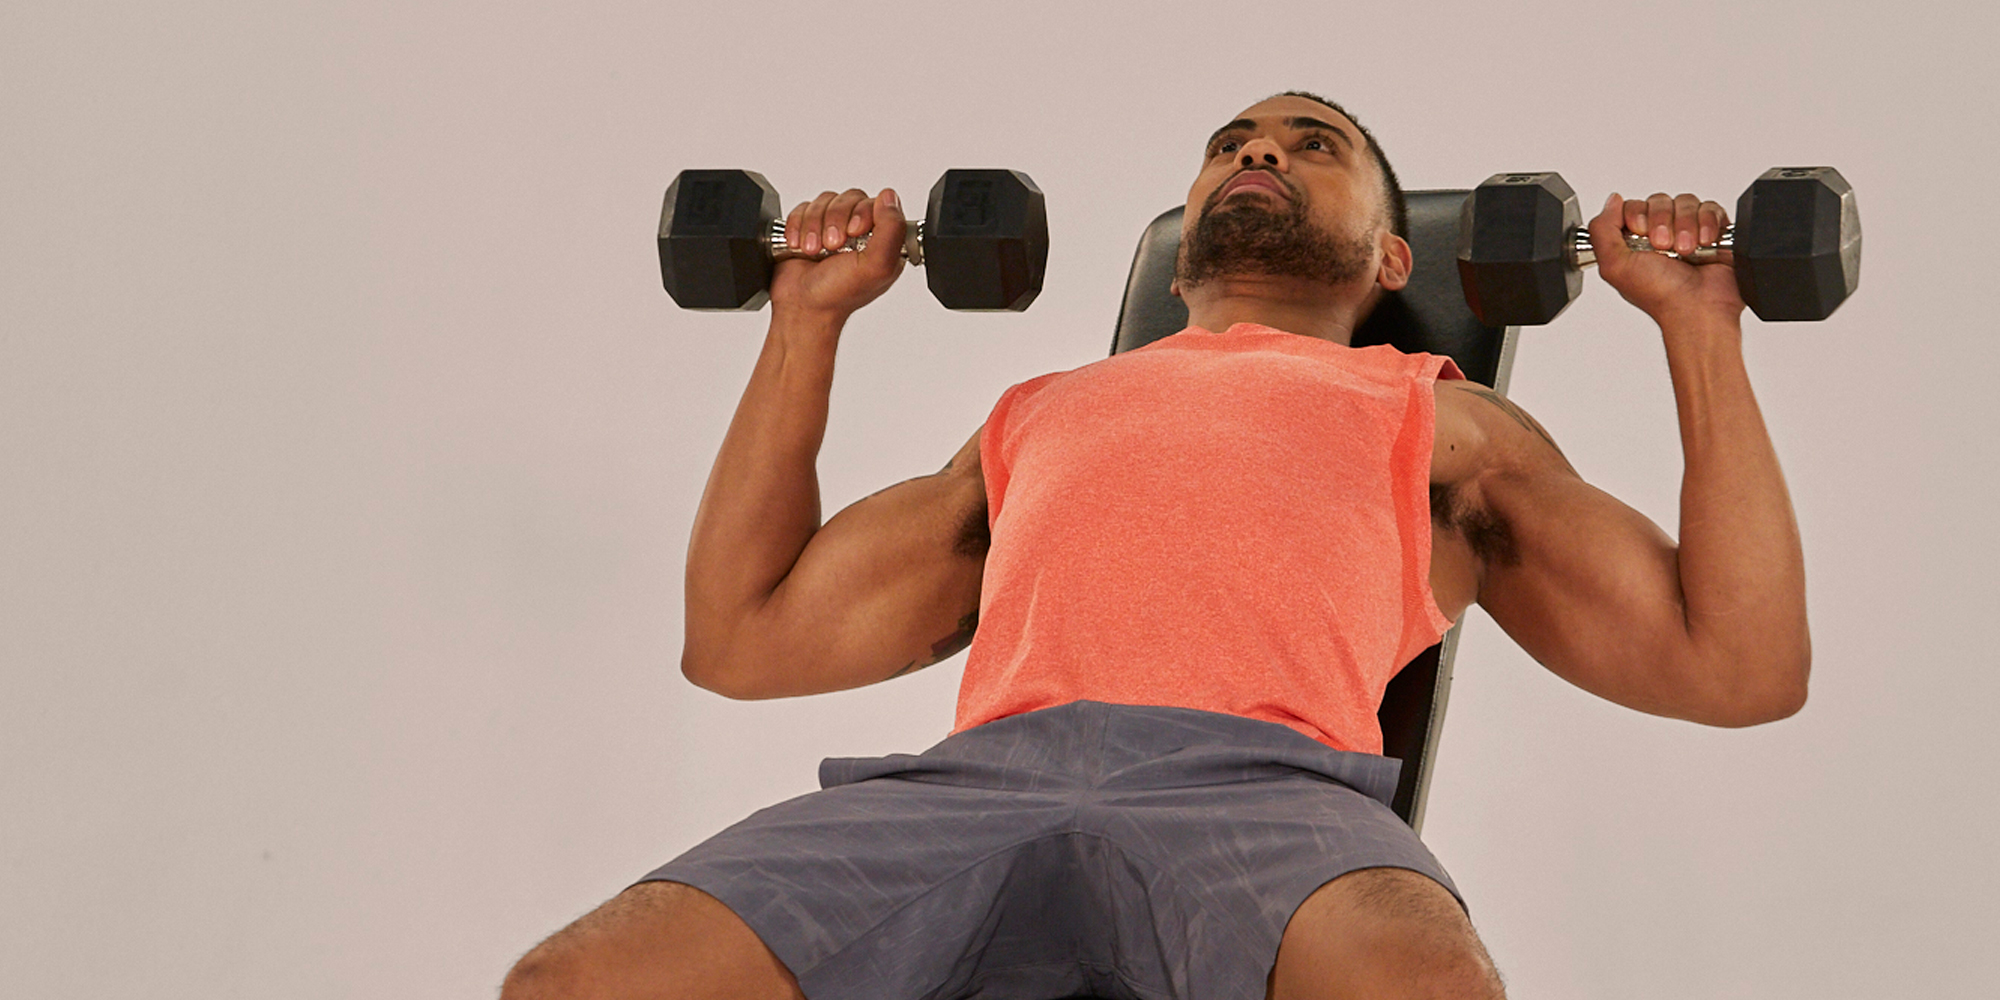 How to Do an Incline Dumbbell Press